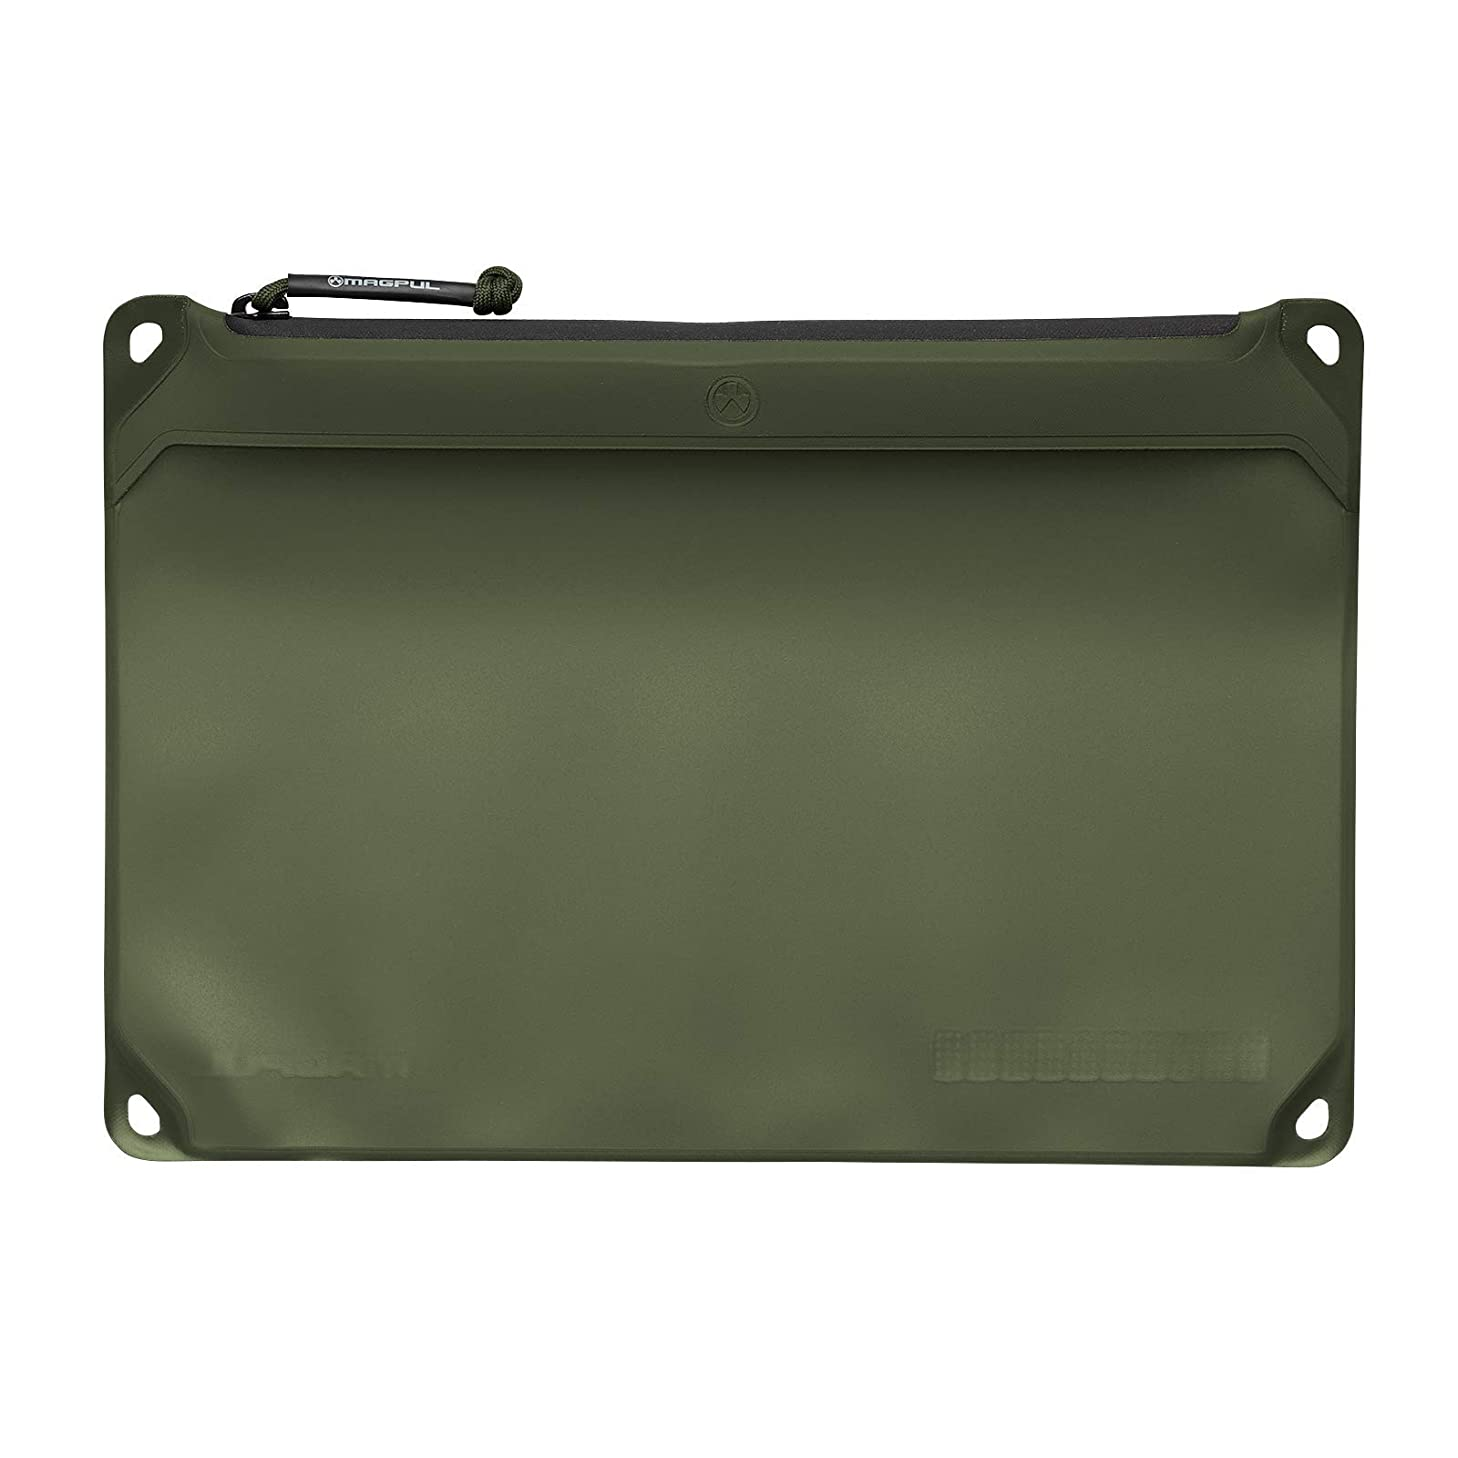 Magpul DAKA Window Pouch Zippered Tactical Range Tool and Gear Bag, Olive Drab Green, Large